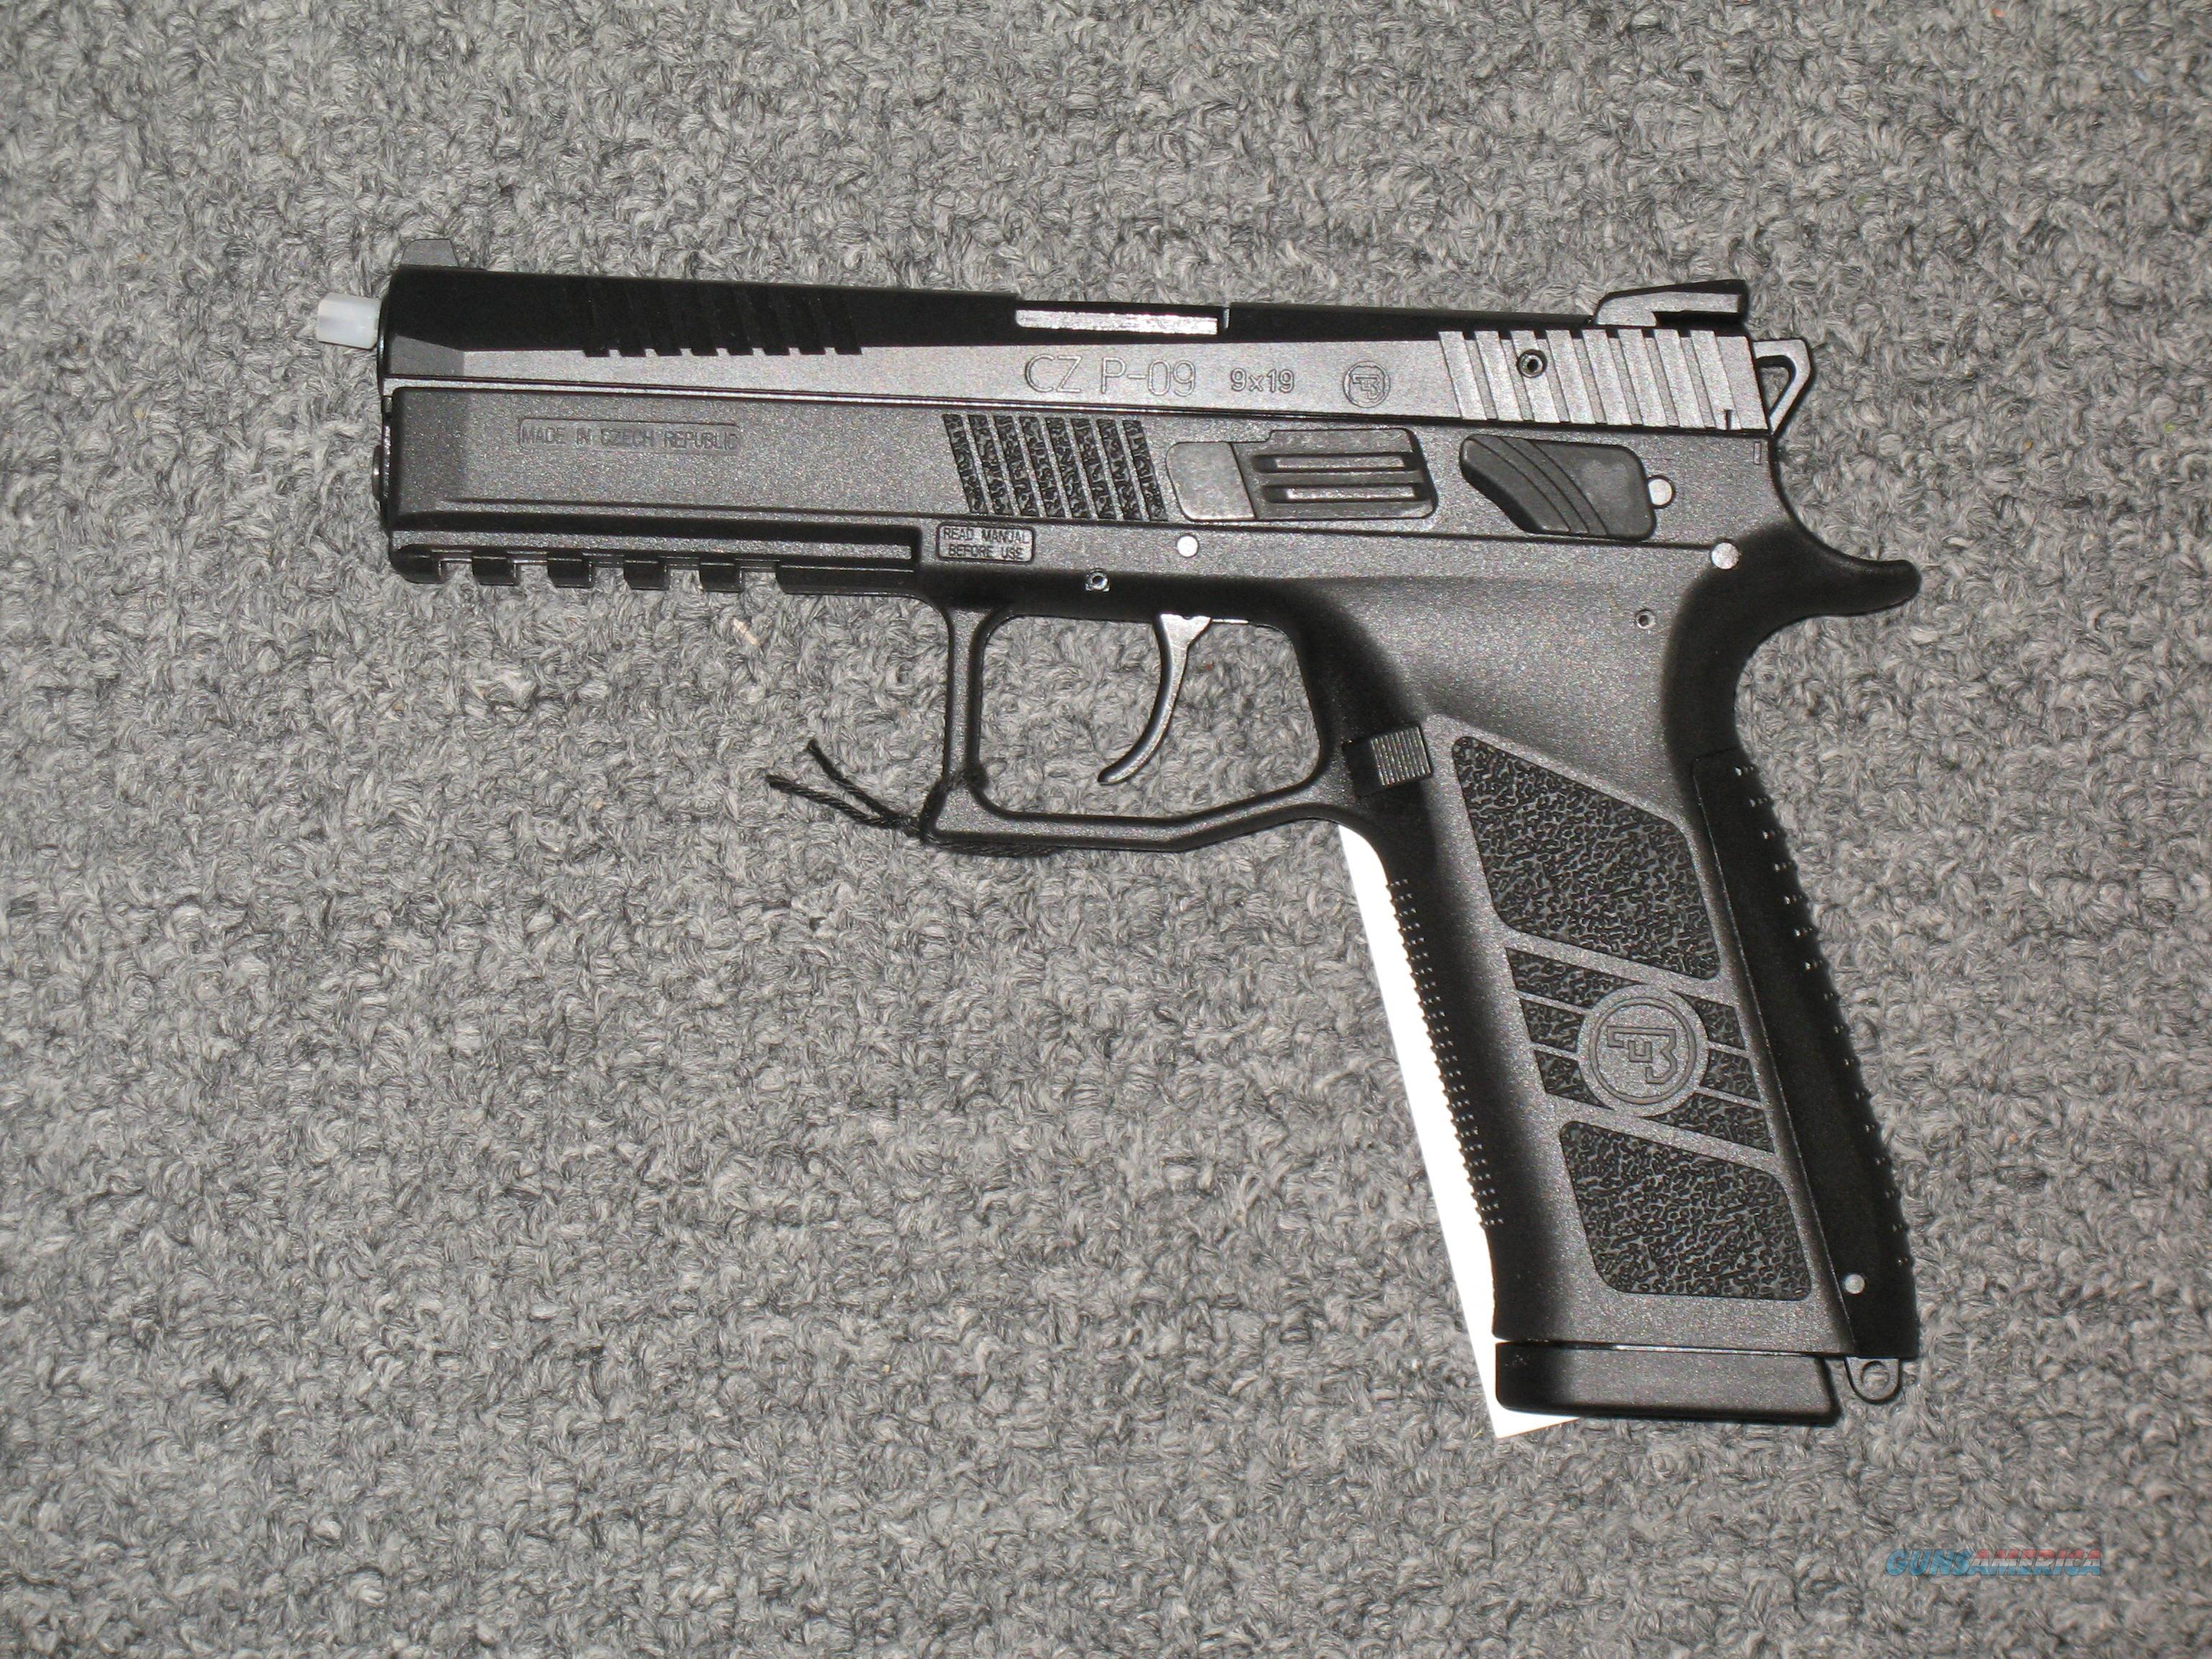 CZ P-09 9mm with two 19 round magazines  Guns > Pistols > CZ Pistols